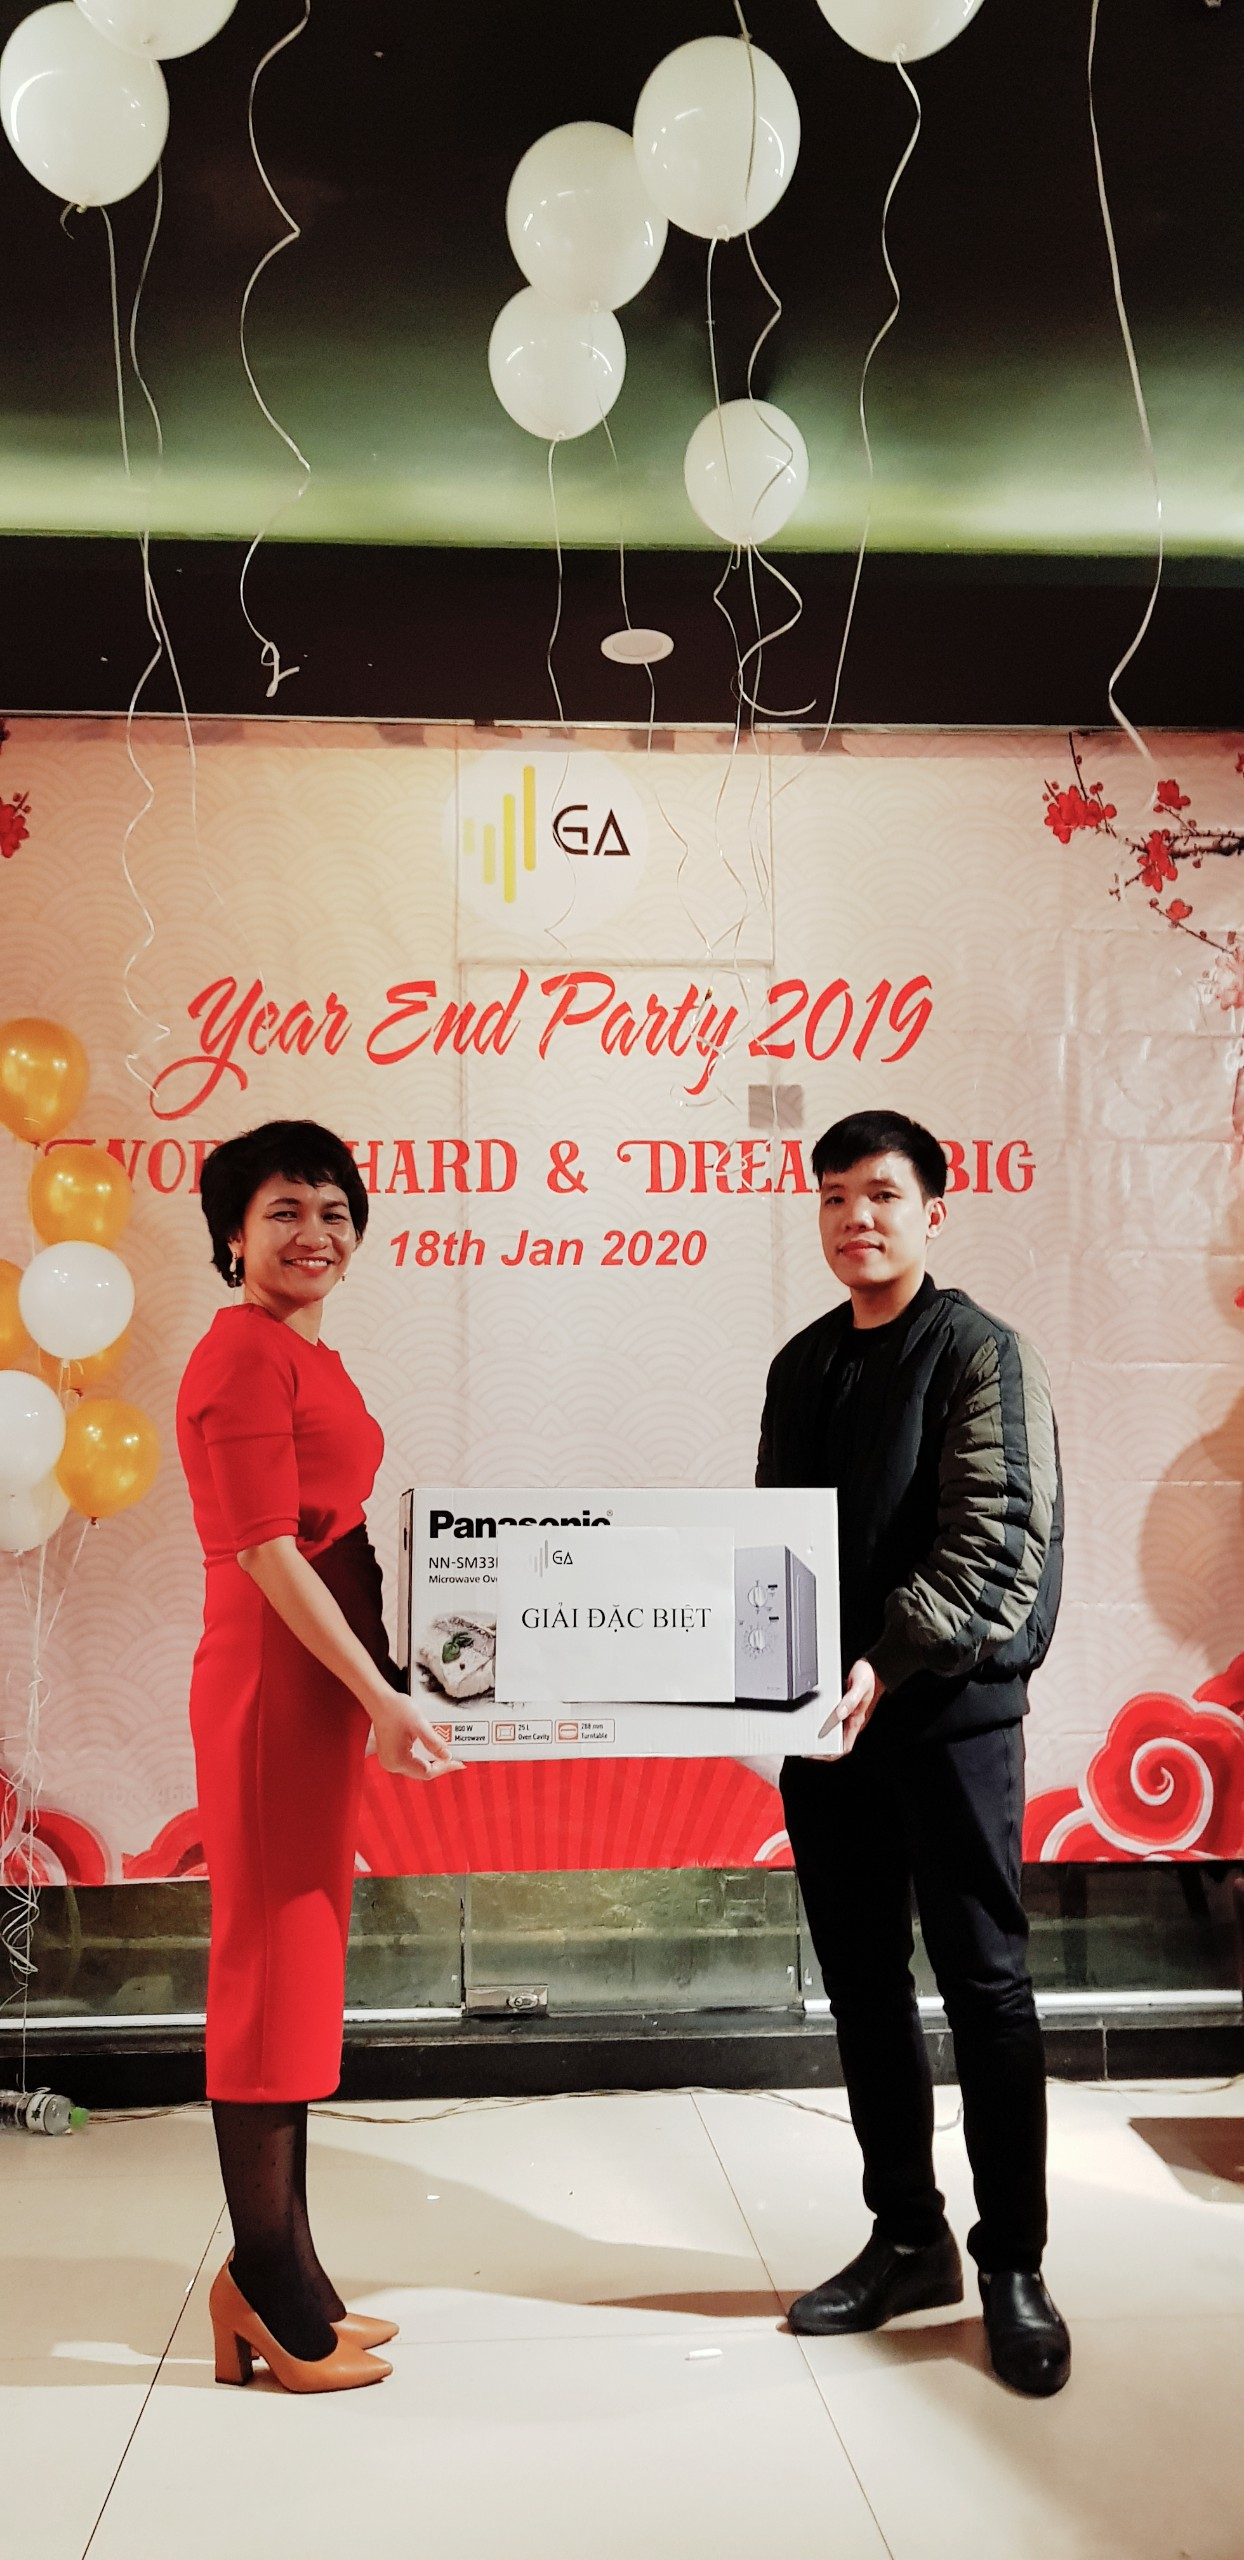 Year End Party 2019 Lucky draw giai dac biet